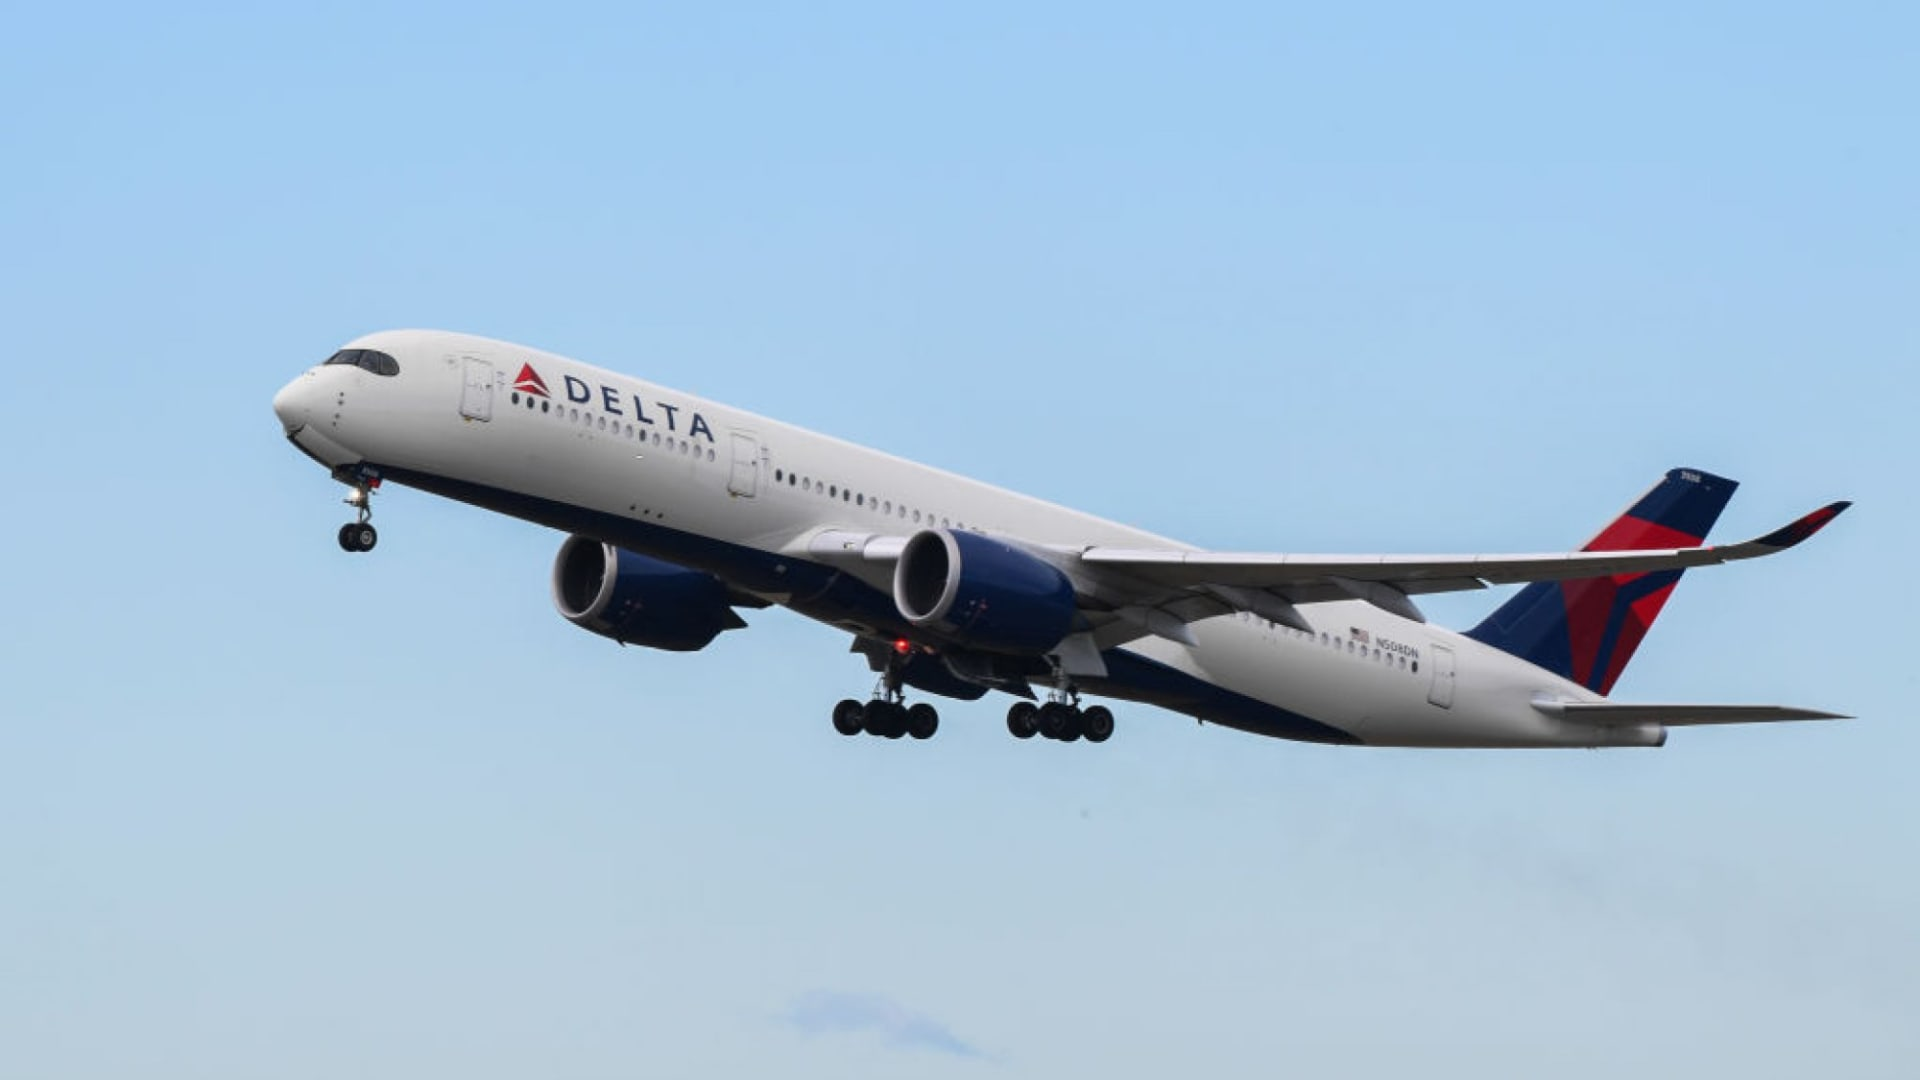 Delta Air Lines Just Sent a Brilliant Email to Millions of Passengers. This 1 Word Mattered Most